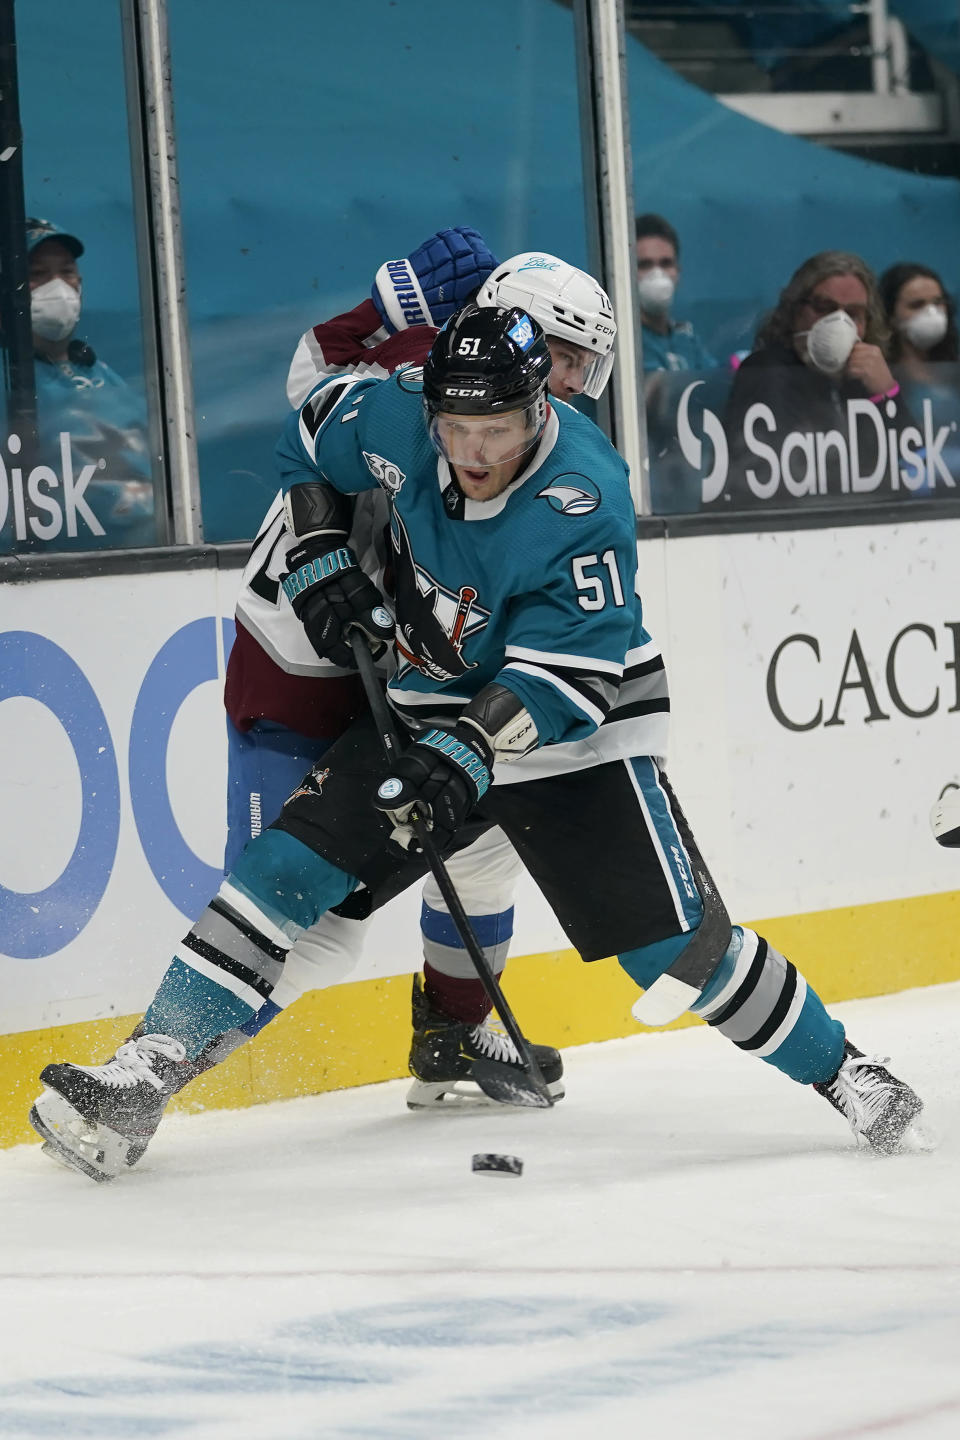 San Jose Sharks defenseman Radim Simek (51) reaches for the puck in front of Colorado Avalanche right wing Joonas Donskoi during the second period of an NHL hockey game in San Jose, Calif., Monday, March 1, 2021. (AP Photo/Jeff Chiu)